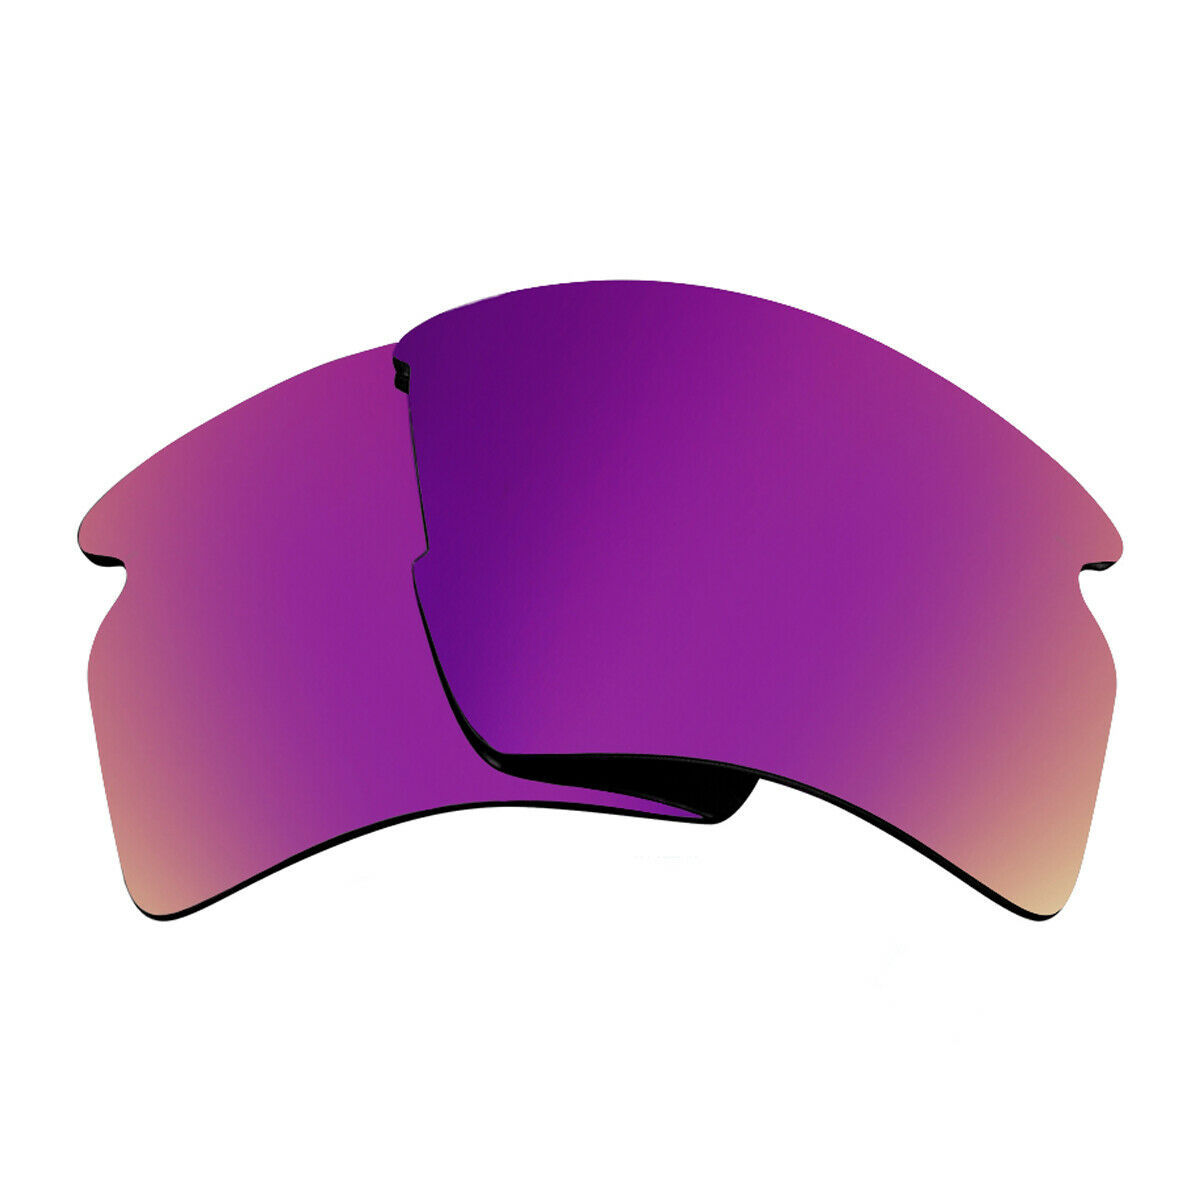 Primary image for Polarized Replacement Lenses for-Oakley Flak 2.0 XL Sunglass Anti-Scratch Purple